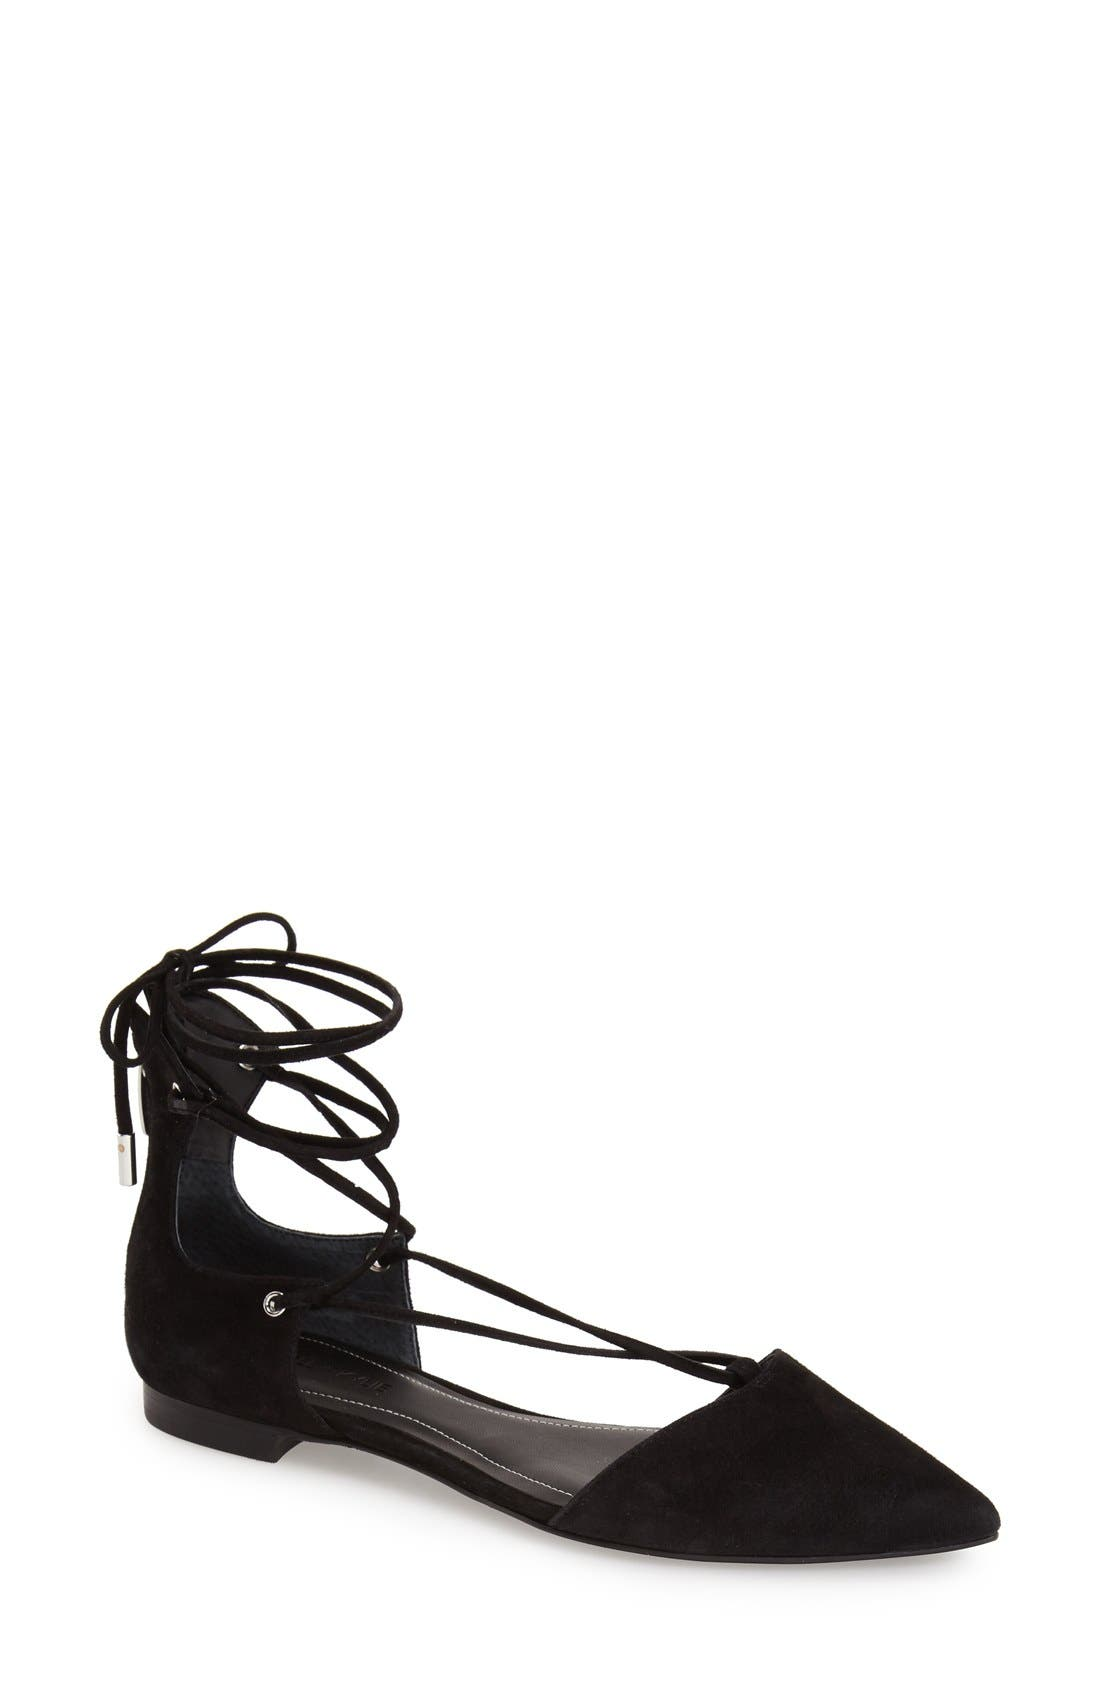 Main Image - KENDALL + KYLIE 'Sage' Pointy Toe Ghillie Flat (Women)